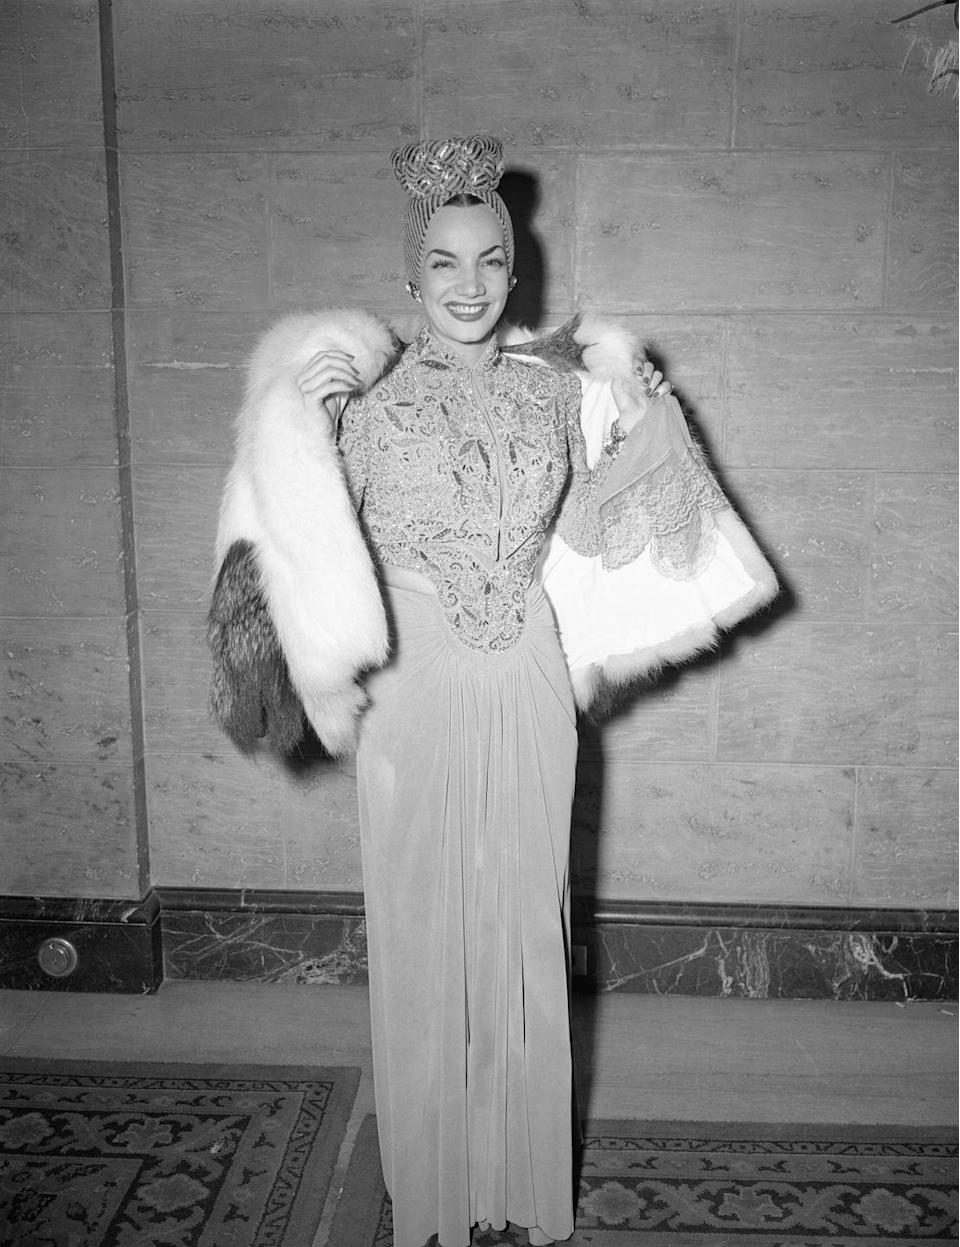 <p>The iconic Portugese-born Brazilian singer, dancer, and actress wore a stunning gown with a beaded bodice, fur coat, and patterned head wrap to the awards. This same year she starred in the musical flick, <em>That Night in Rio</em>. </p>